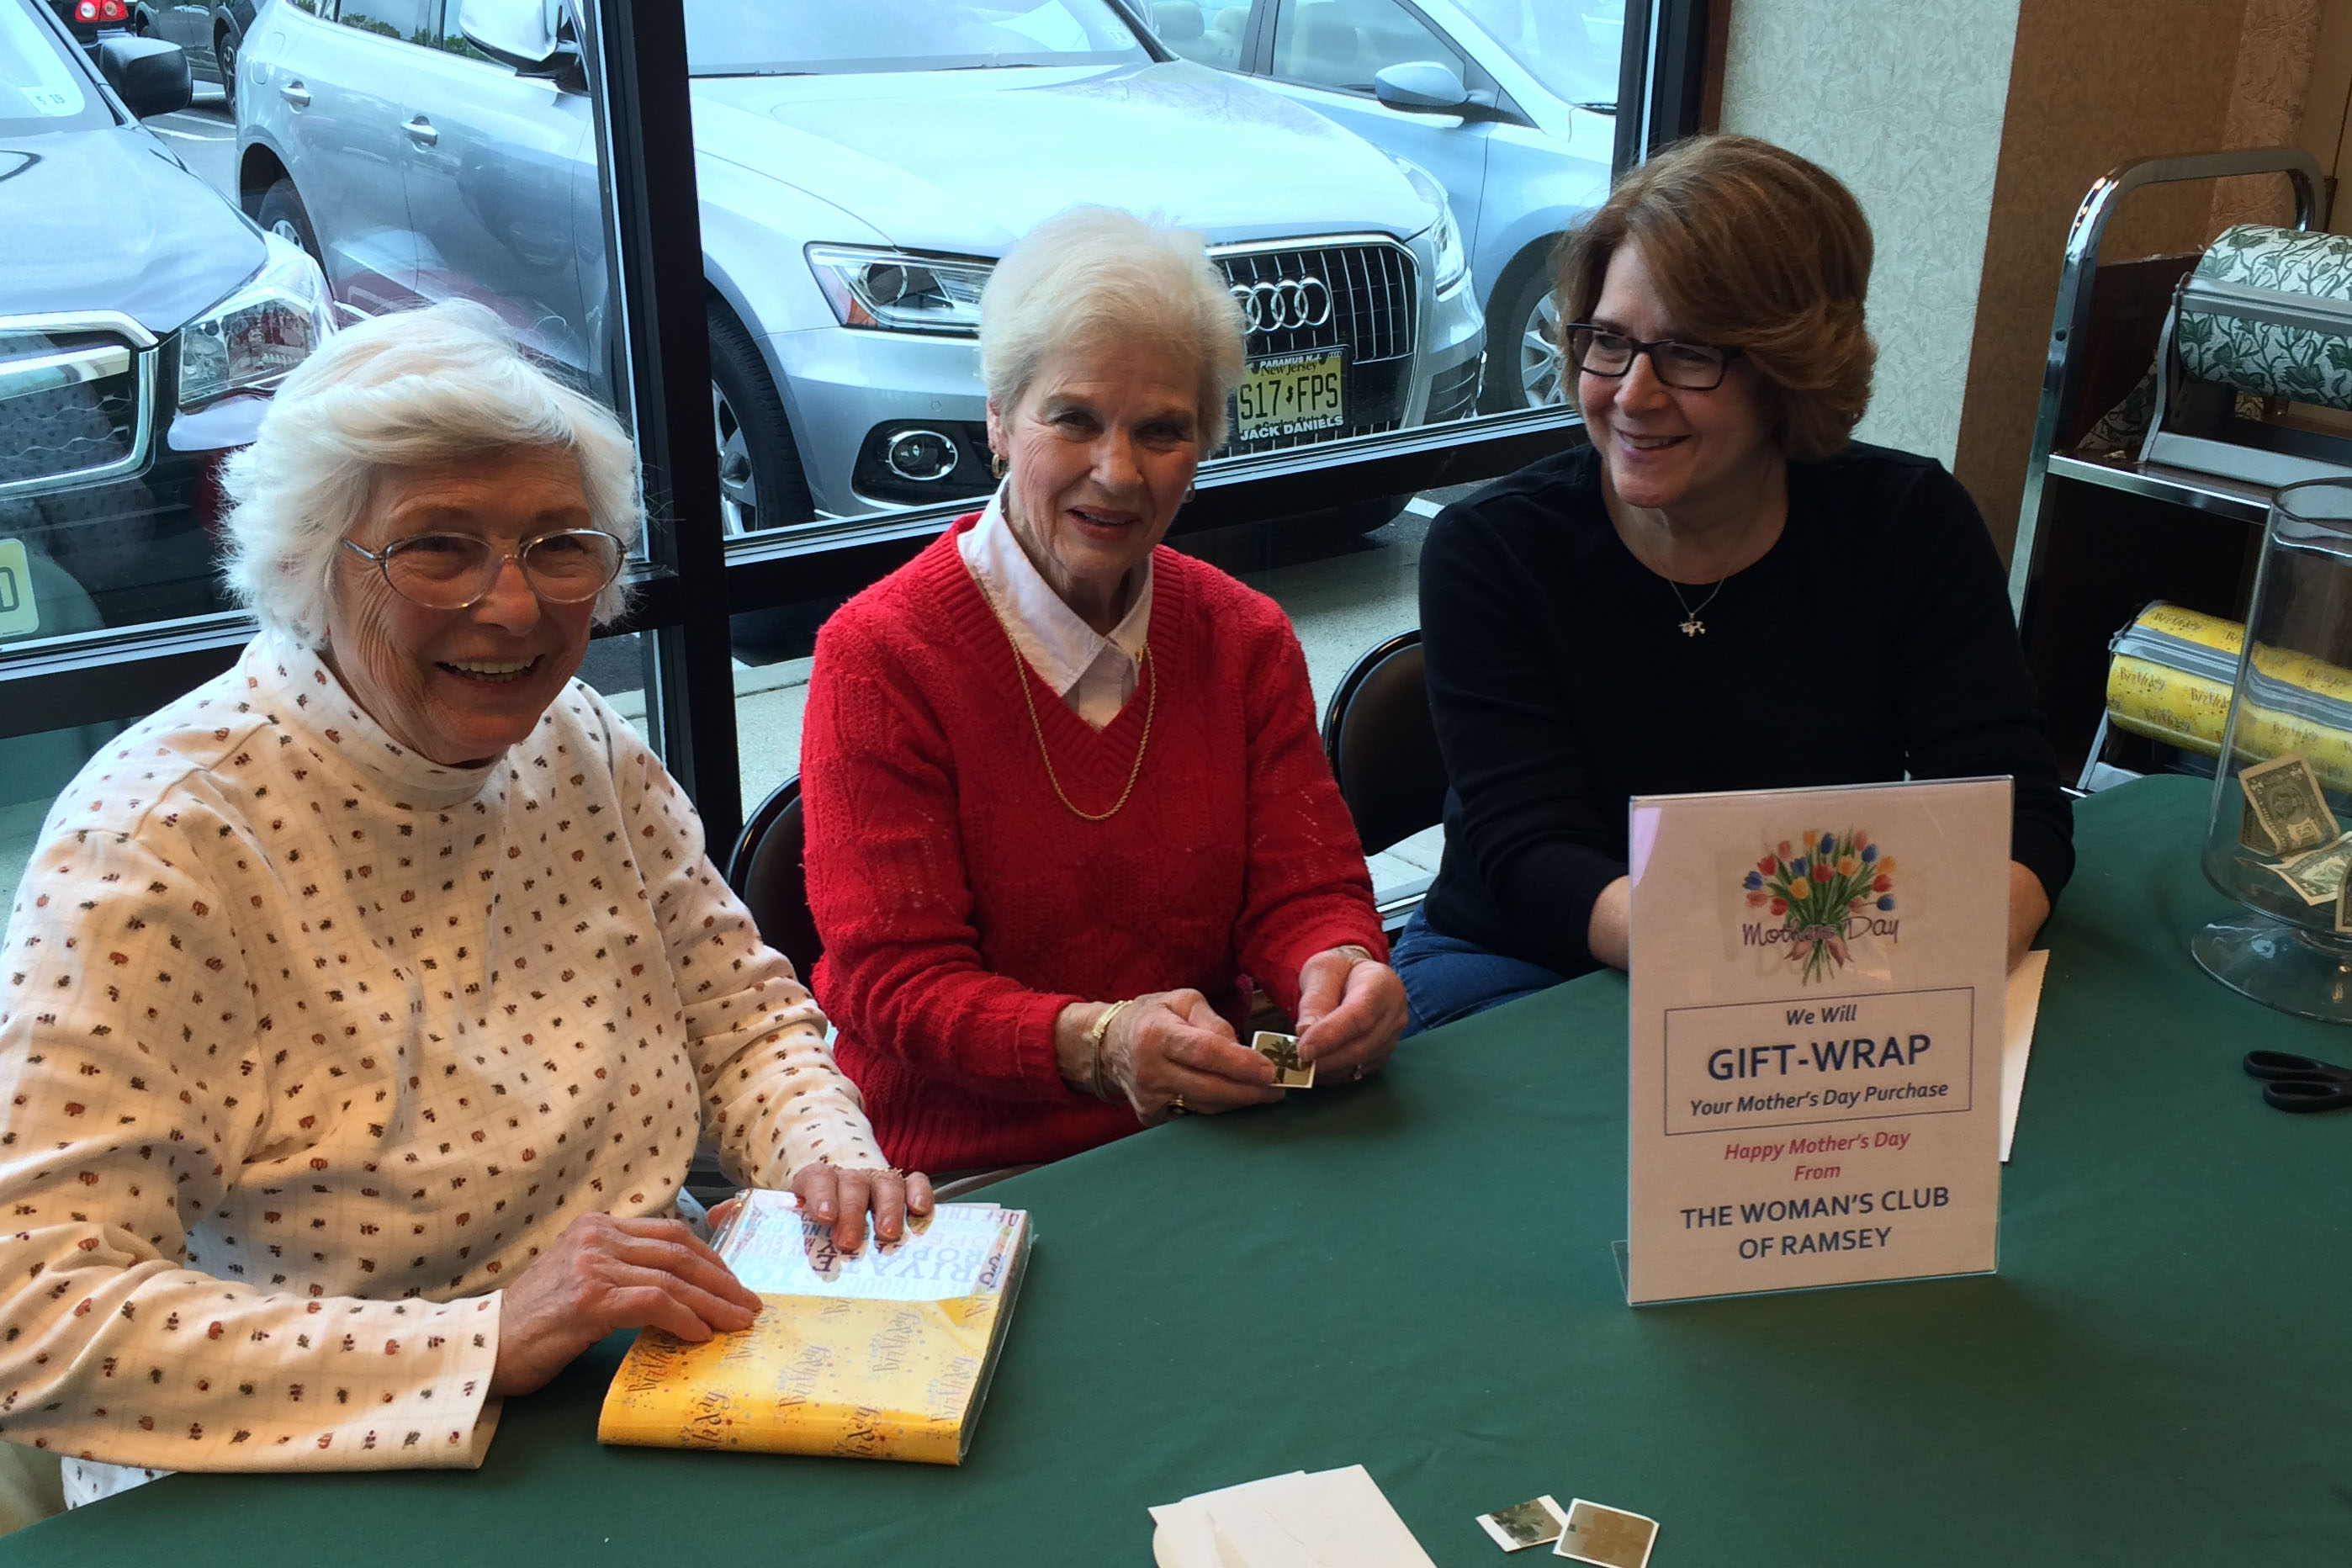 Helen Mekita, Marge Detweiler and Tannis LaManna wrap Mother's Day gifts at Barnes & Noble.